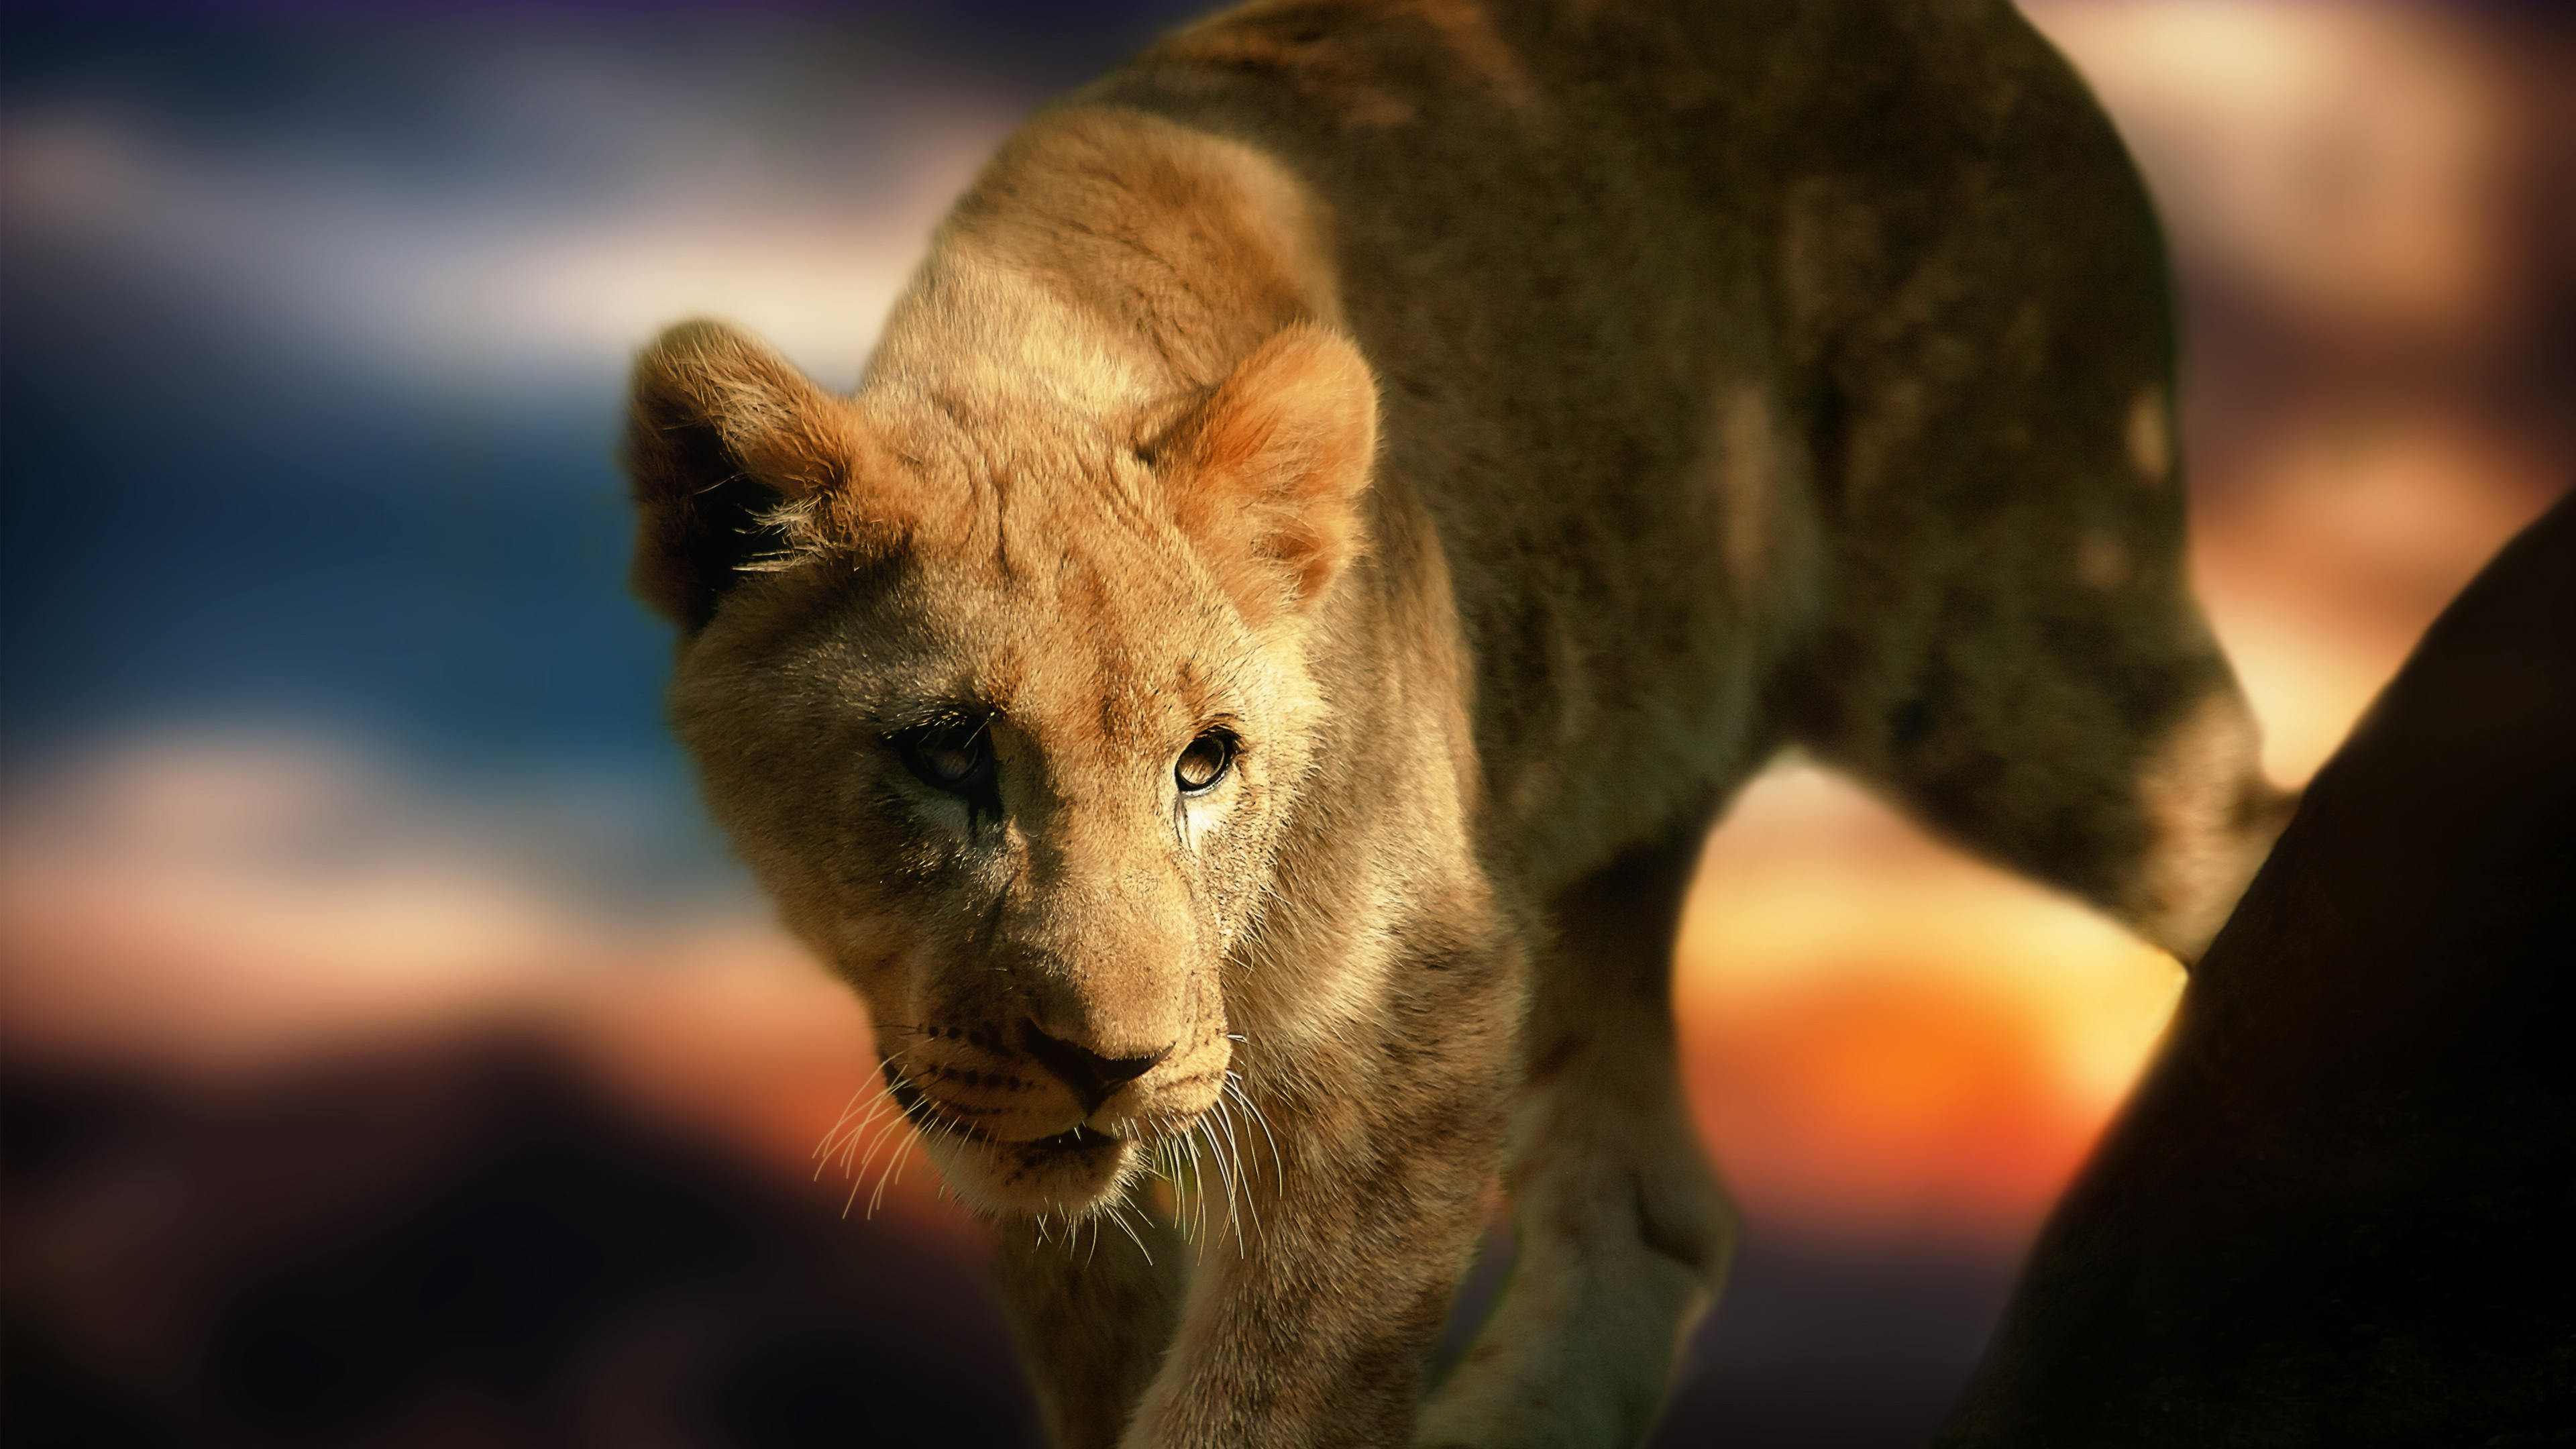 Jungle Animal Wallpaper 20 Cool 4k Wallpapers The Nology